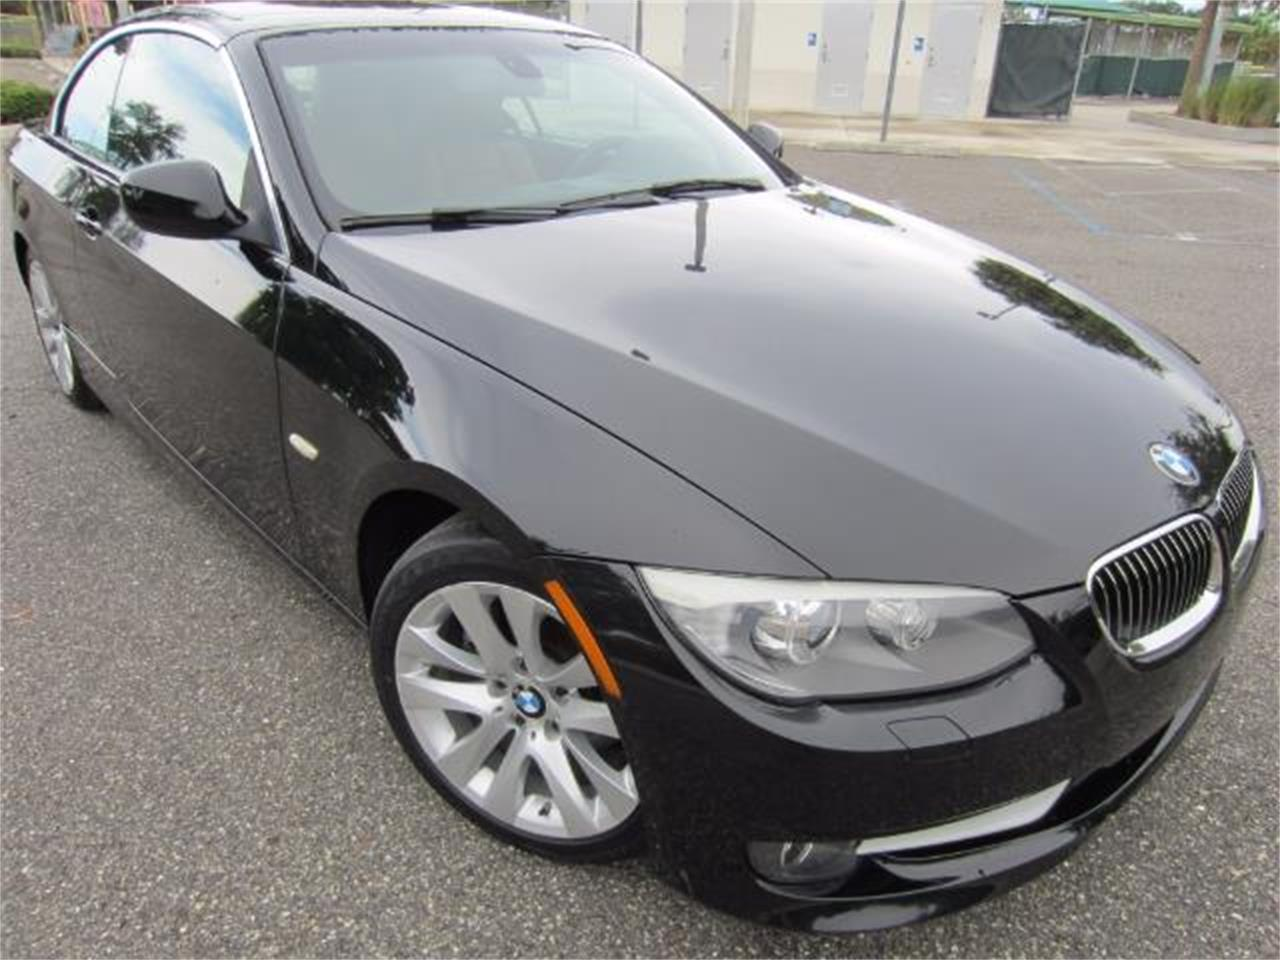 2011 BMW 328i for sale in Delray Beach, FL – photo 20